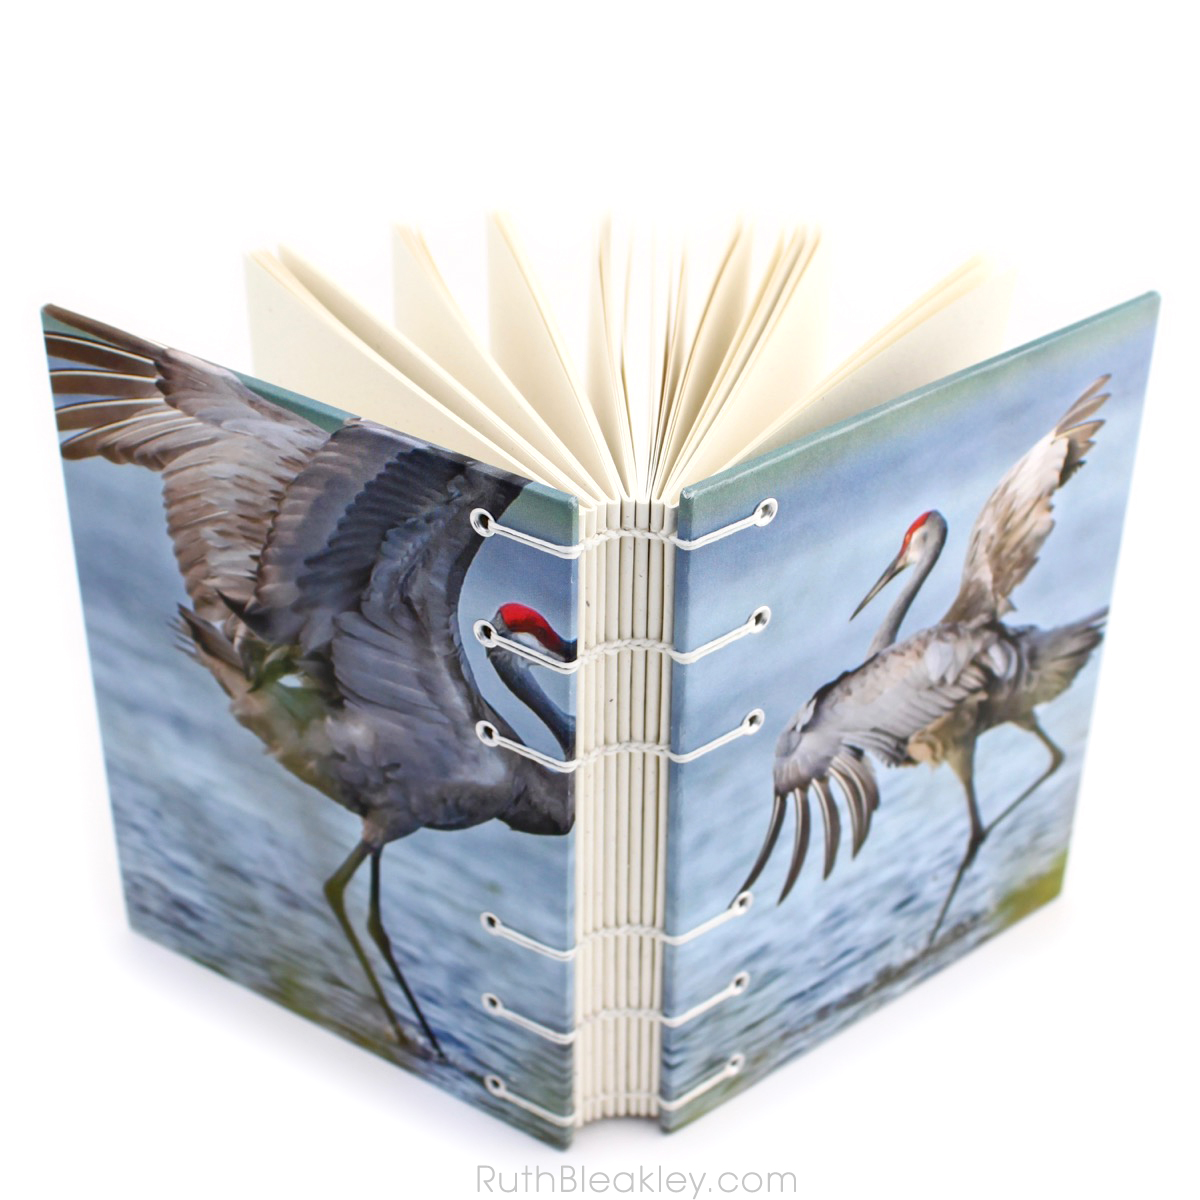 Cranes Journal handmade by book artist Ruth Bleakley - 1 (1)